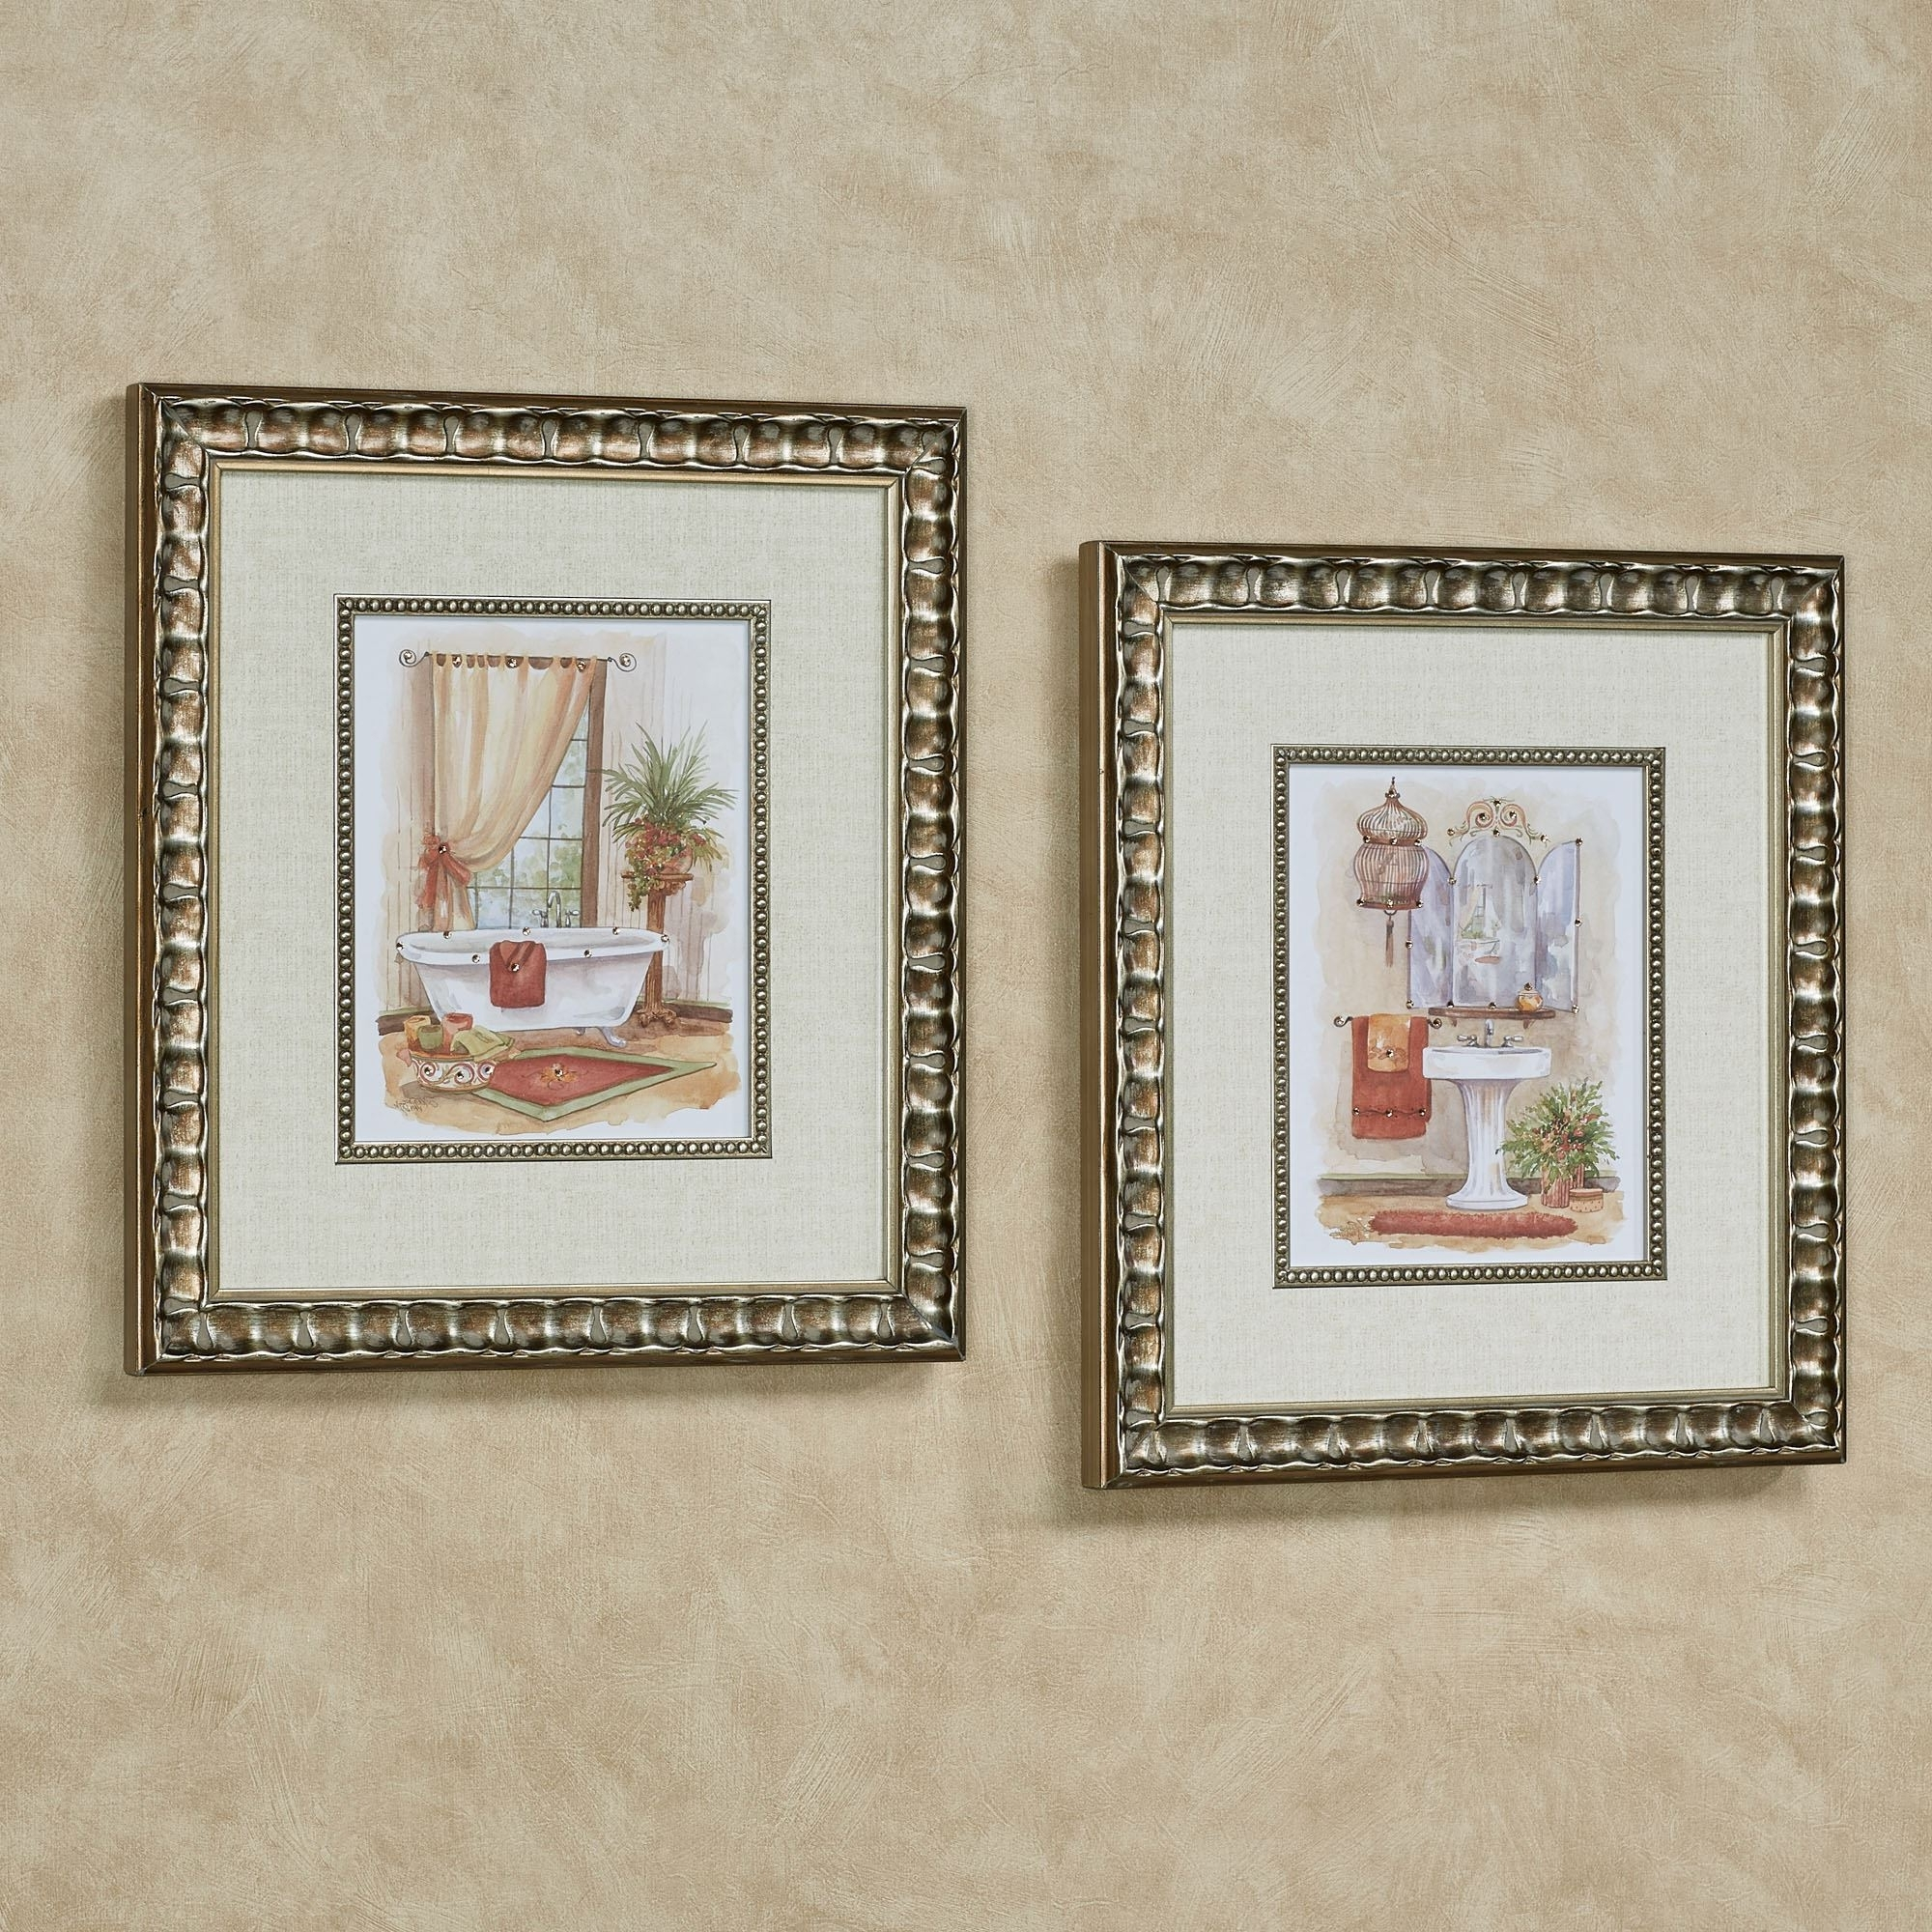 Watercolor Bath In Spice Framed Wall Art Within Best And Newest Framed Wall Art (View 6 of 15)